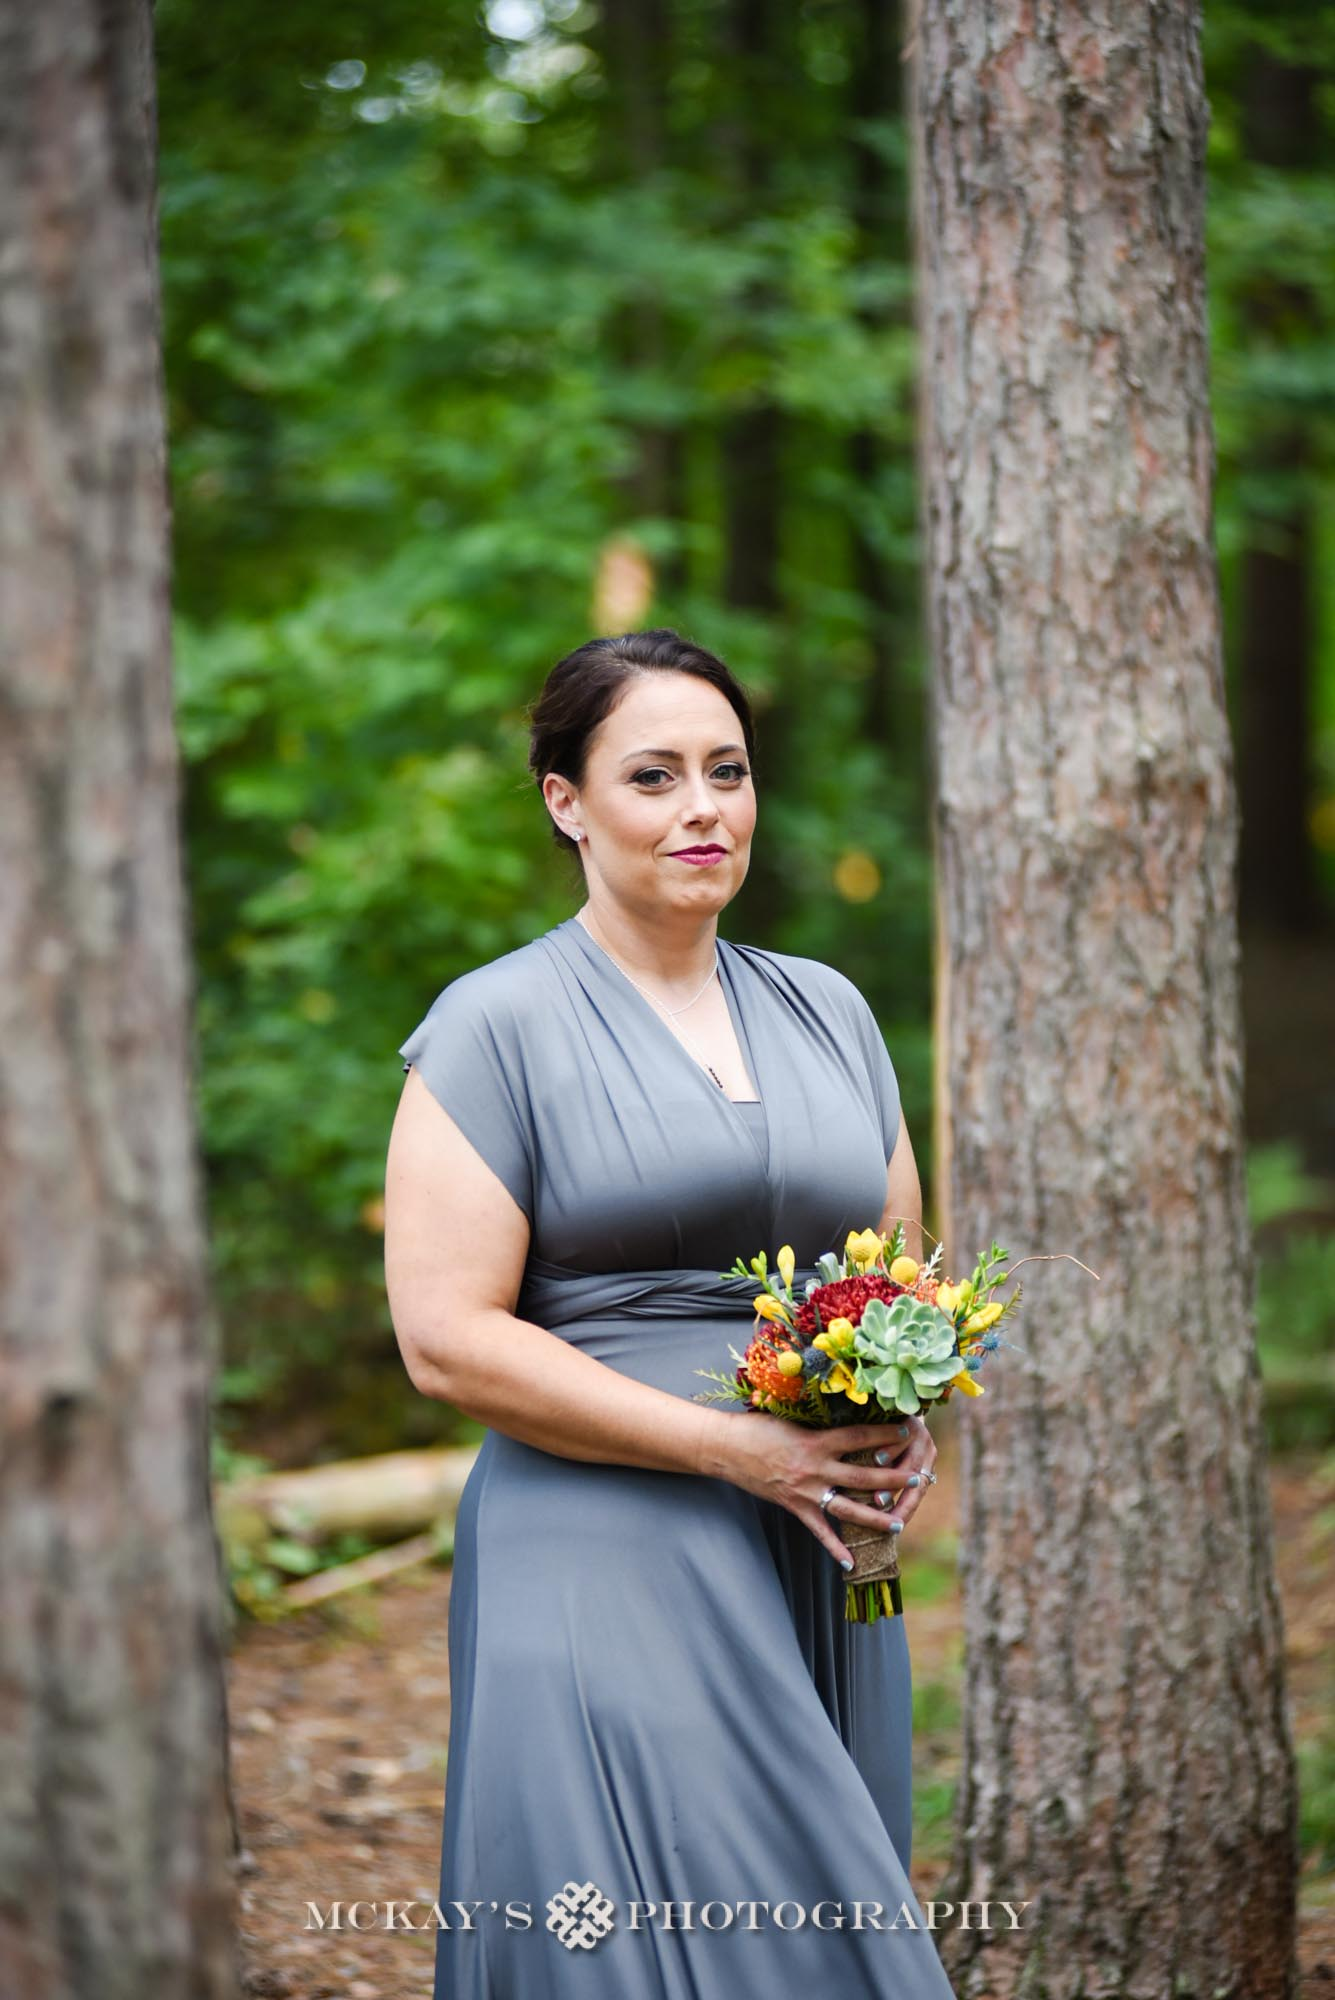 Outdoor wedding venues in Finger Lakes